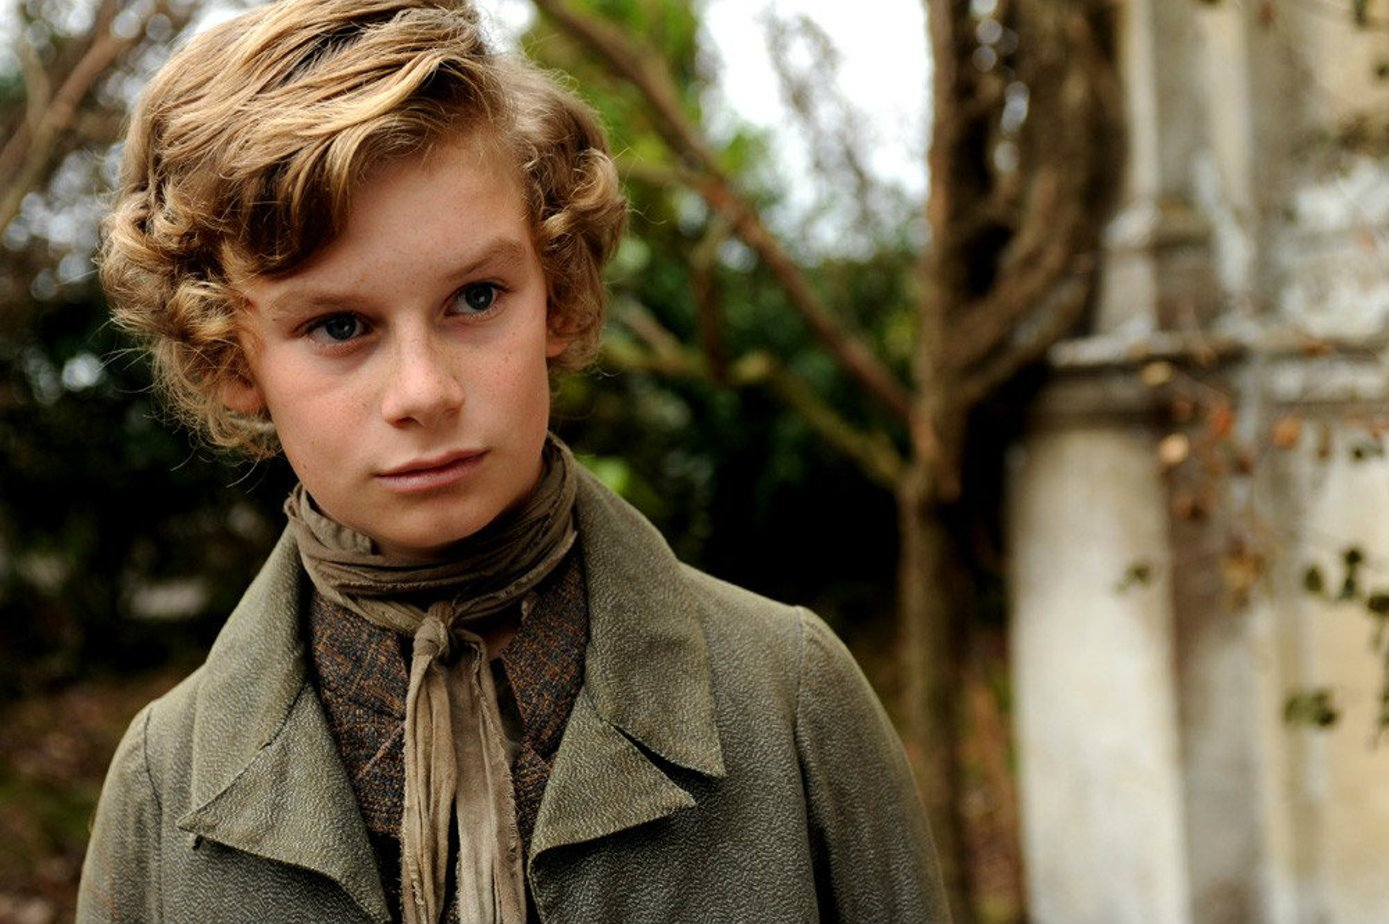 characterization of pip in great expectations by charles dickens Literature network » charles dickens » great expectations » character summary character summary main characters philip pirrip a boy that pip.